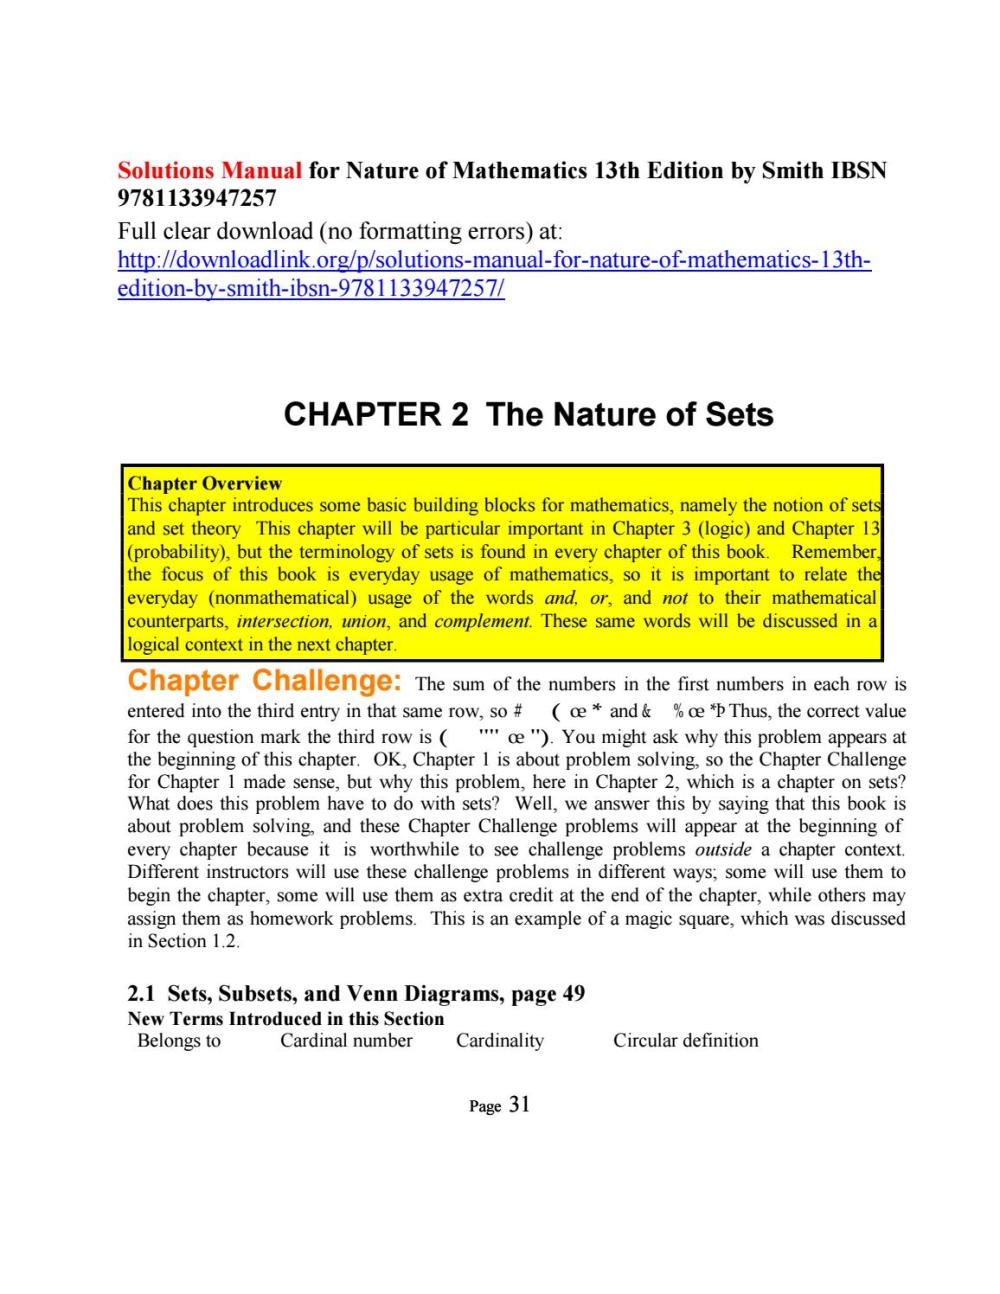 medium resolution of solutions manual for nature of mathematics 13th edition by smith ibsn 9781133947257